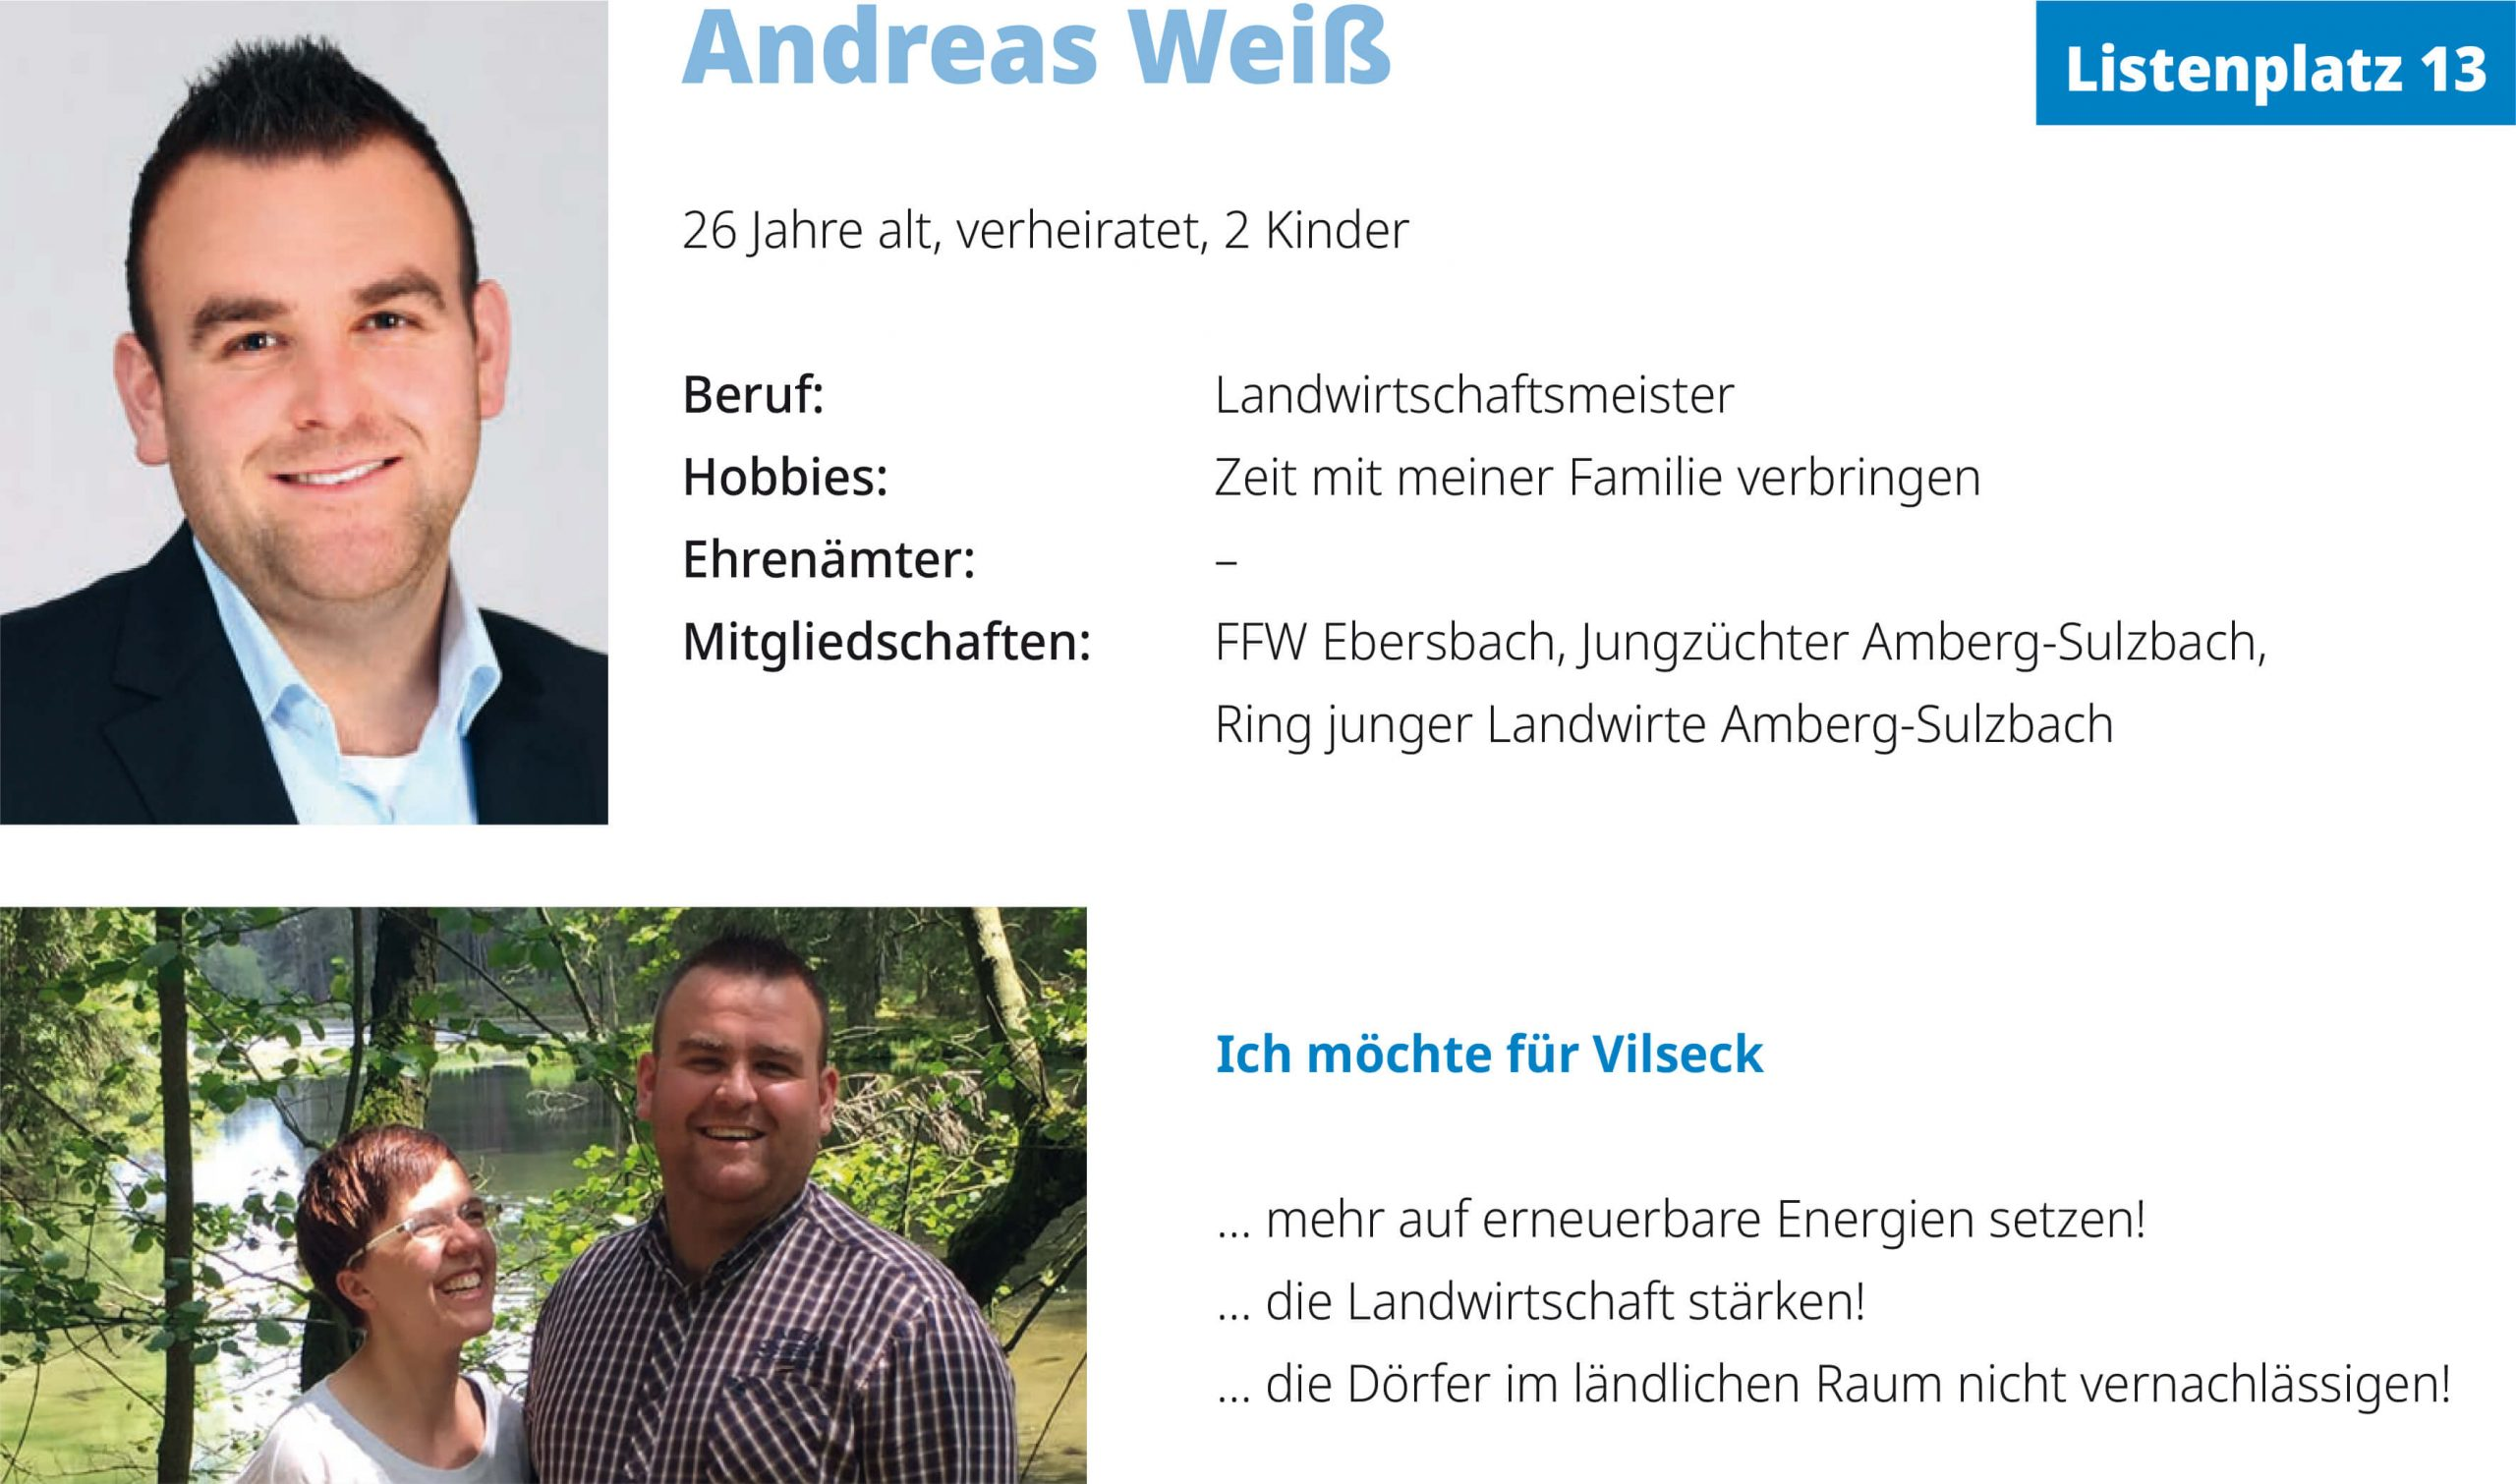 Andreas Weiß